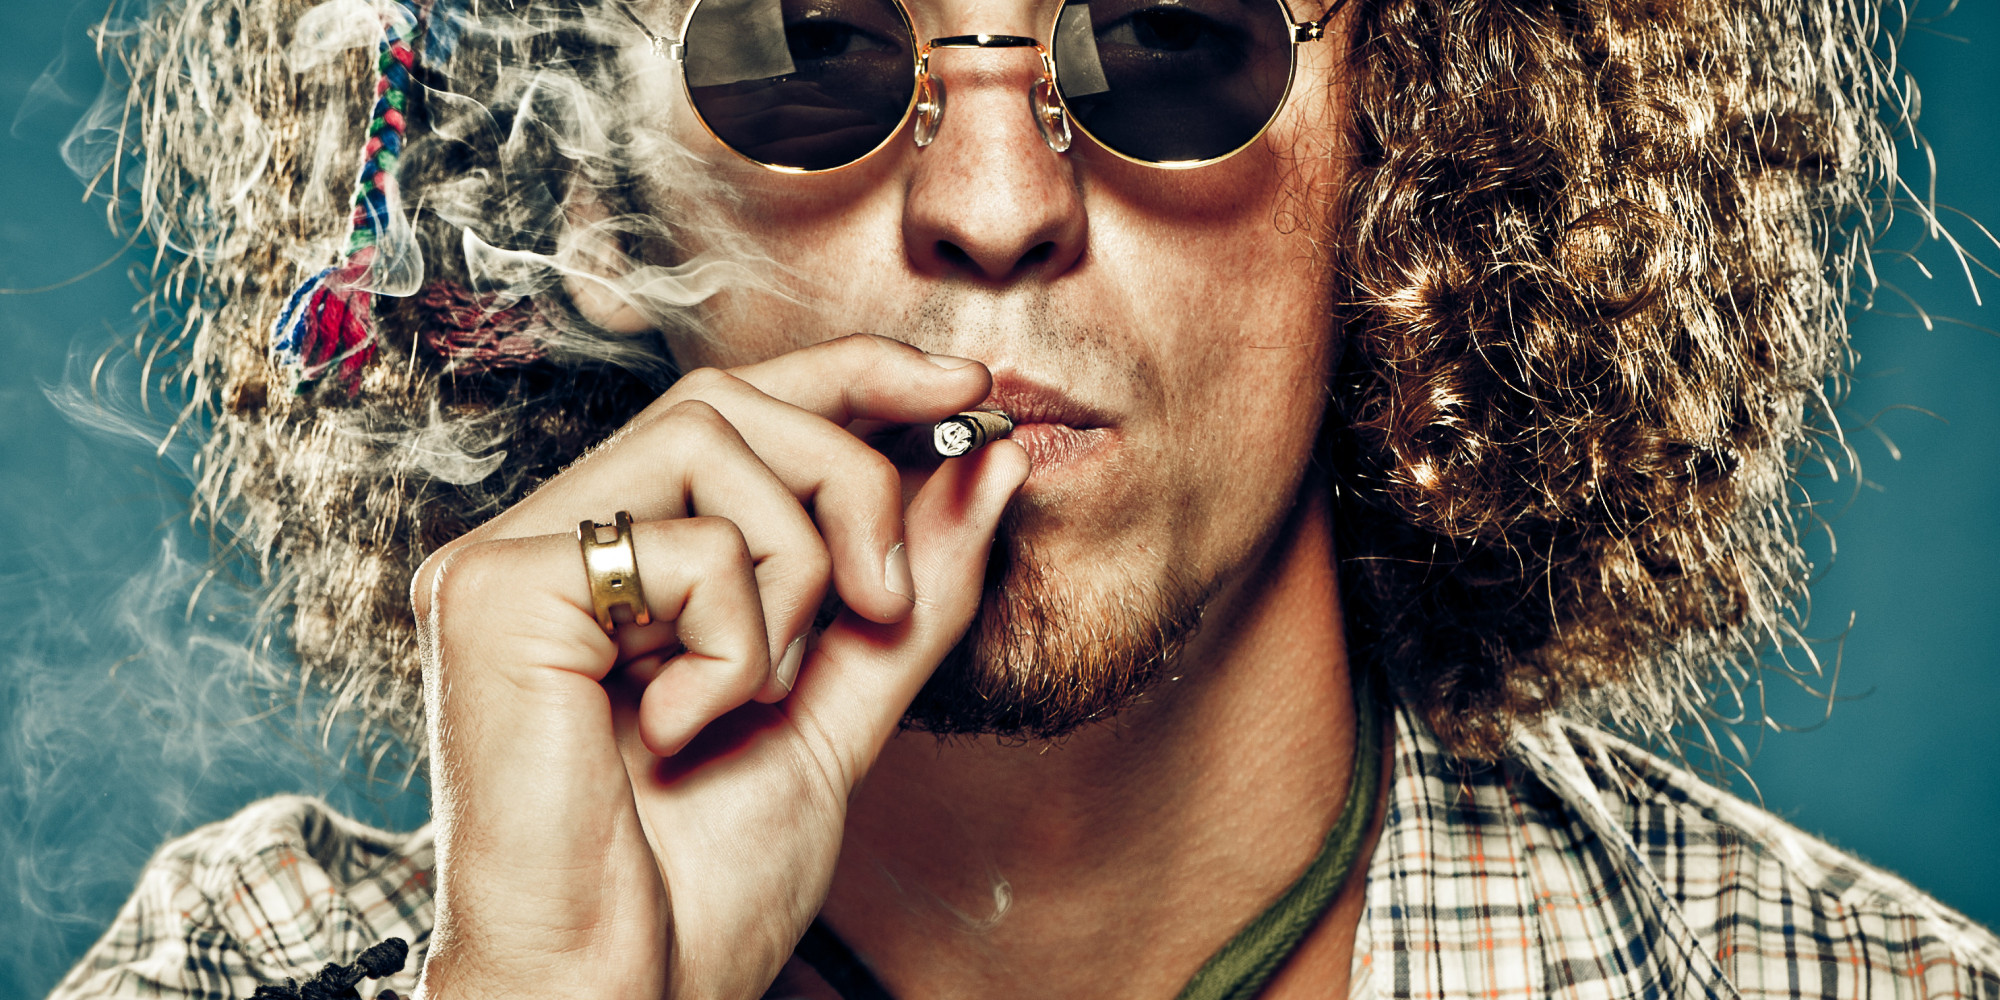 How High Is Your Marijuana IQ? Take this quiz and find out today!